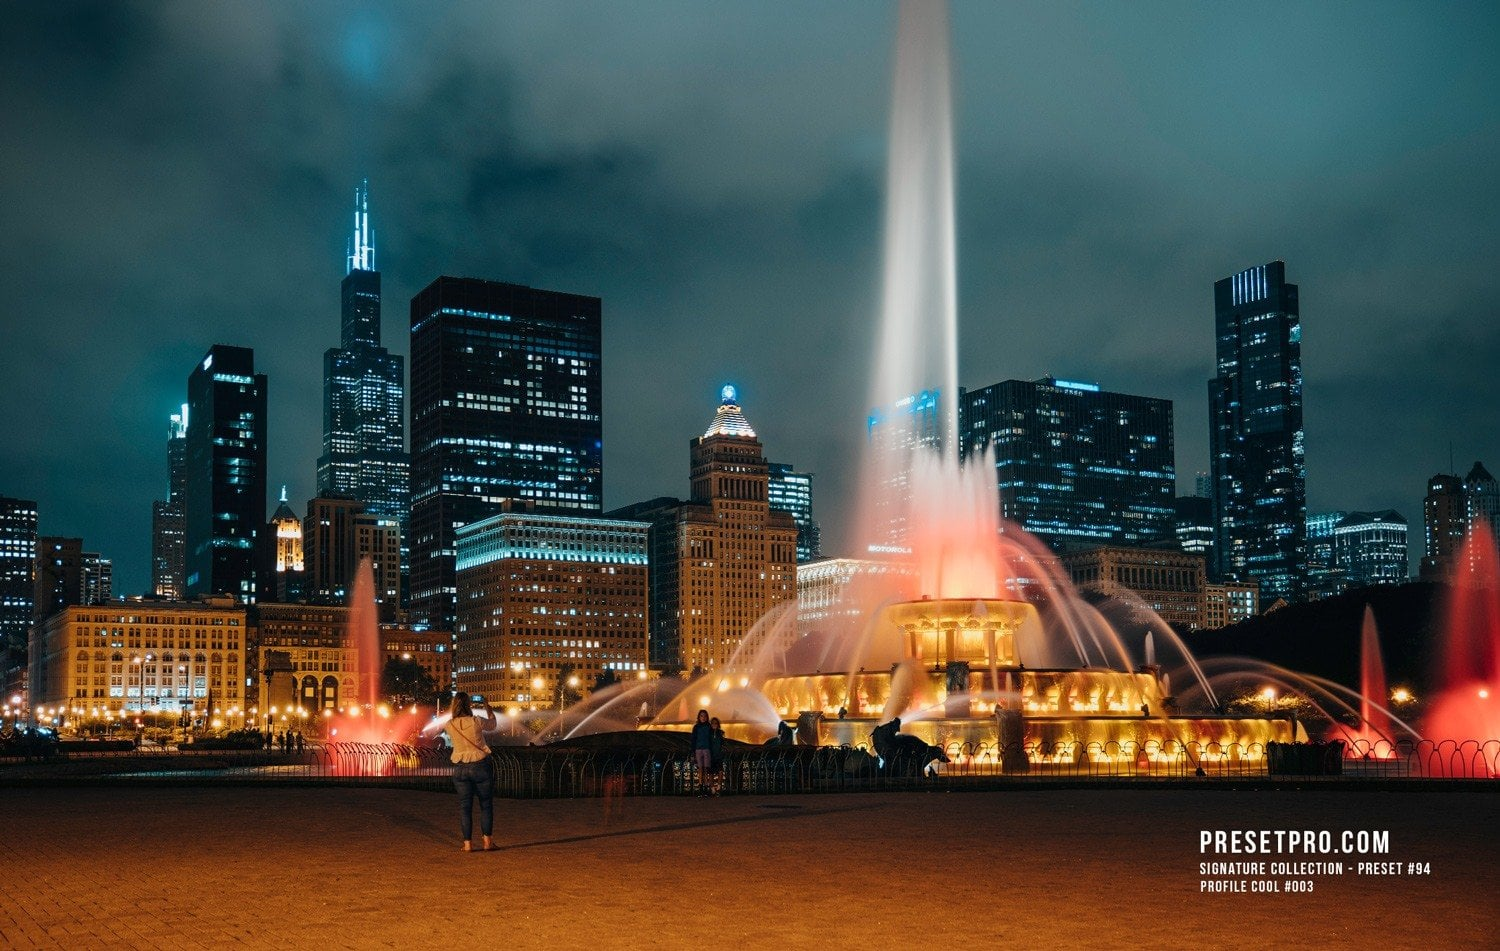 Creative-Flow-Lightroom-Presets-and-Profiles-Chicago-Nights-1